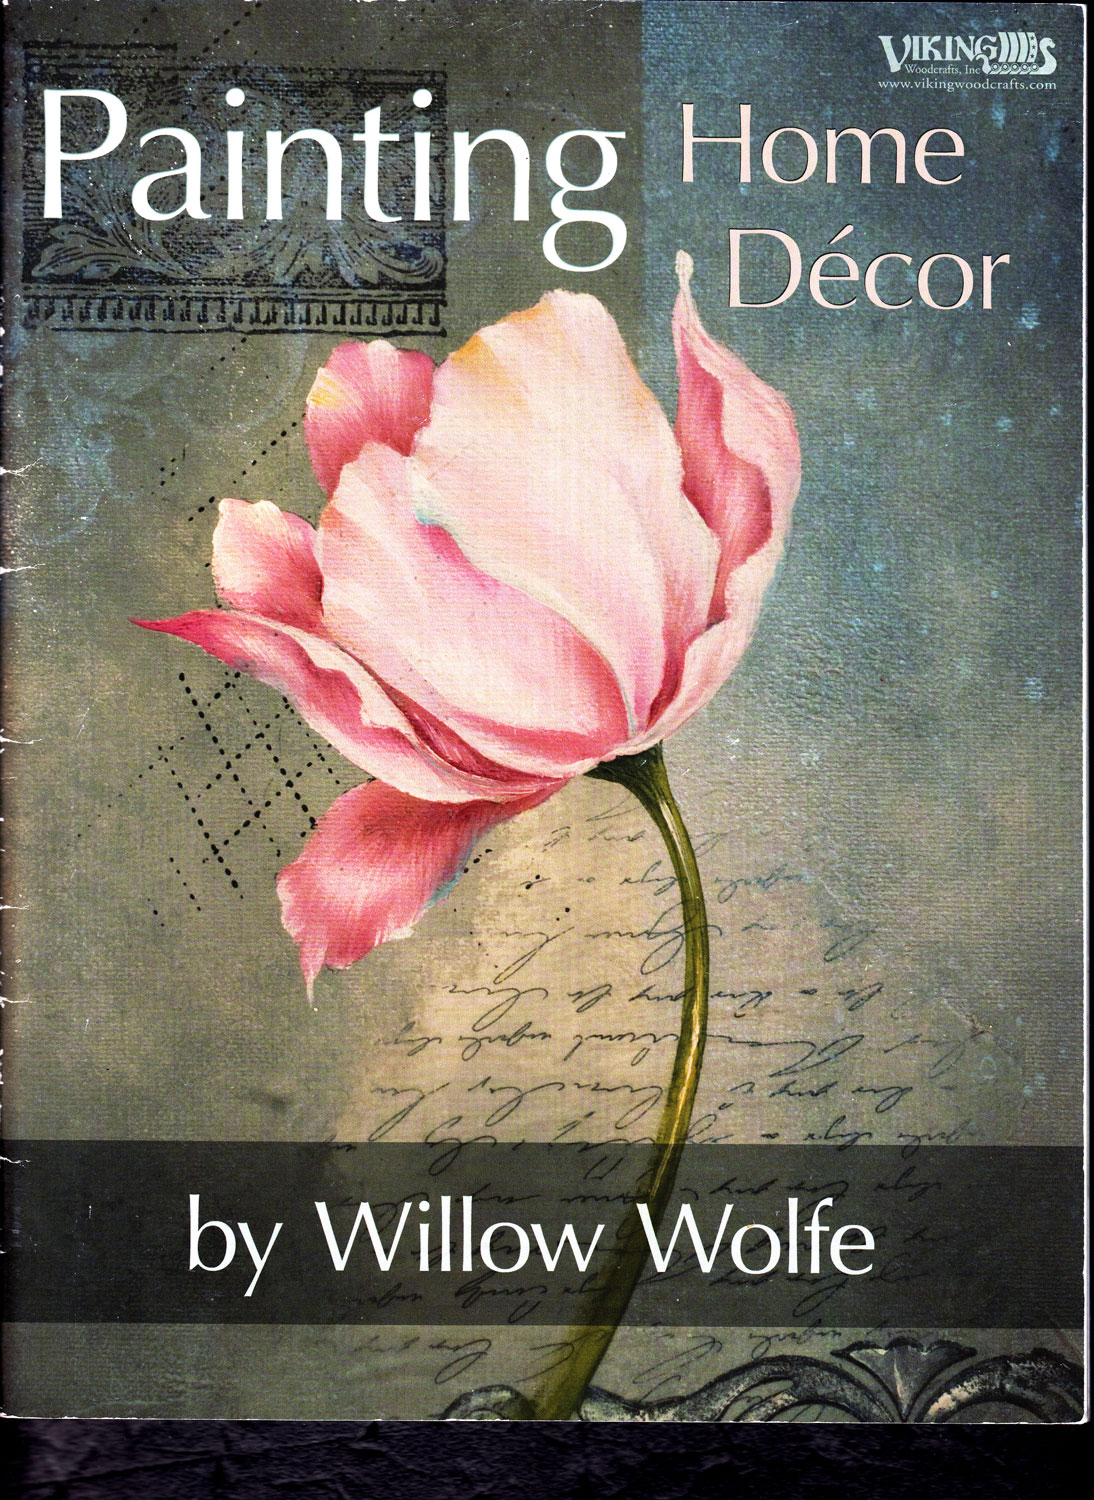 Painting Home decor - Willow Wolfe